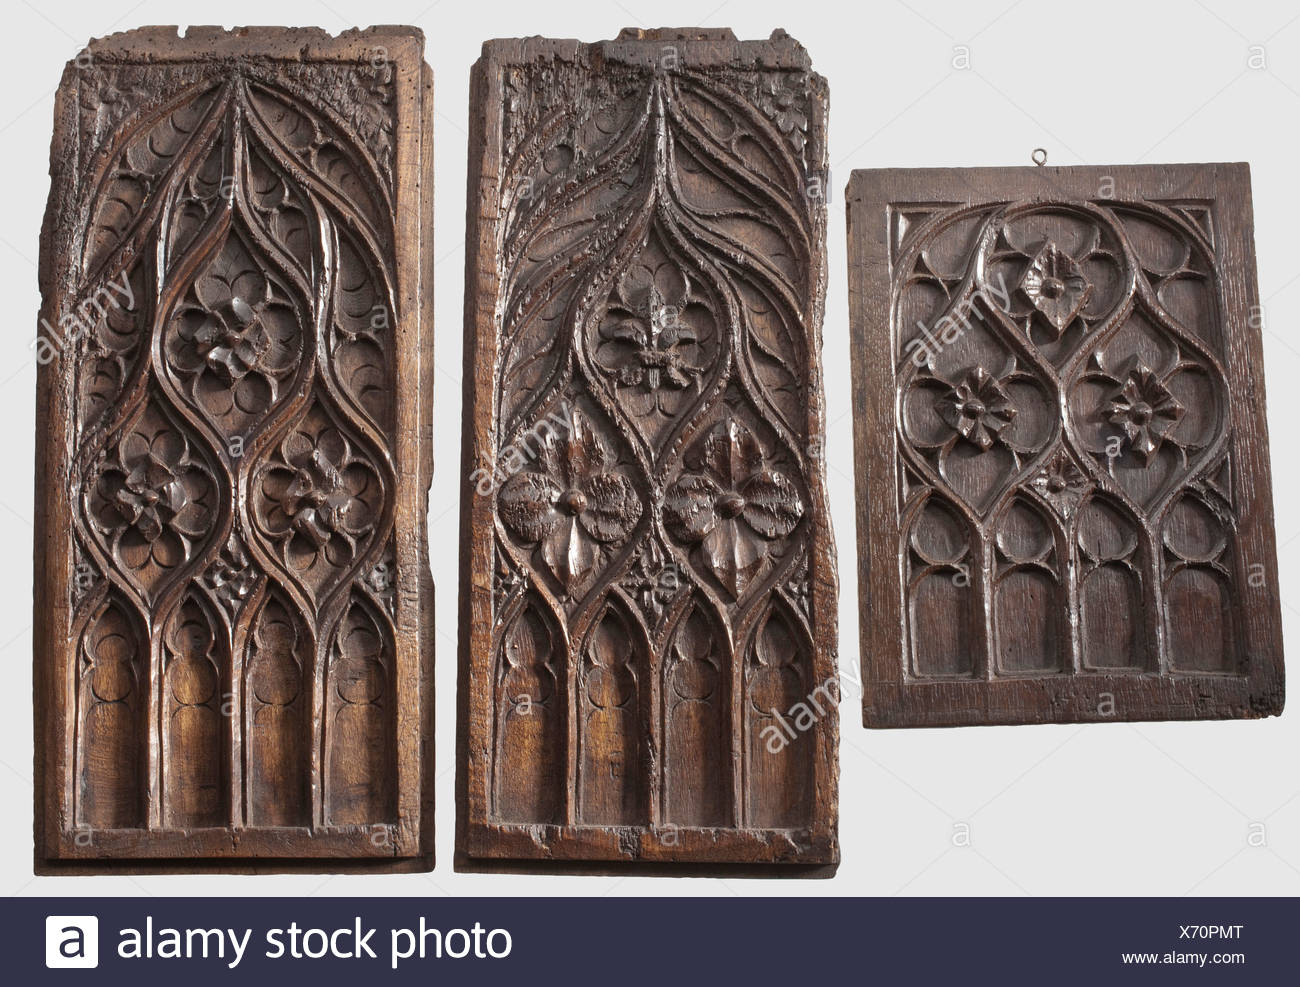 Three German or French Gothic Panels, around 1500 Carved oak with a beautiful aged patina. One pair of tall rectangular furniture panels with decorative tracery, and a similar, smaller piece. Minor defects, wormholes in places. Dimensions 49 x 22.5 and 32 x 23.5 cm, historic, historical, 16th century, handicrafts, handcraft, craft, object, objects, stills, clipping, clippings, cut out, cut-out, cut-outs, Additional-Rights-Clearences-NA - Stock Image